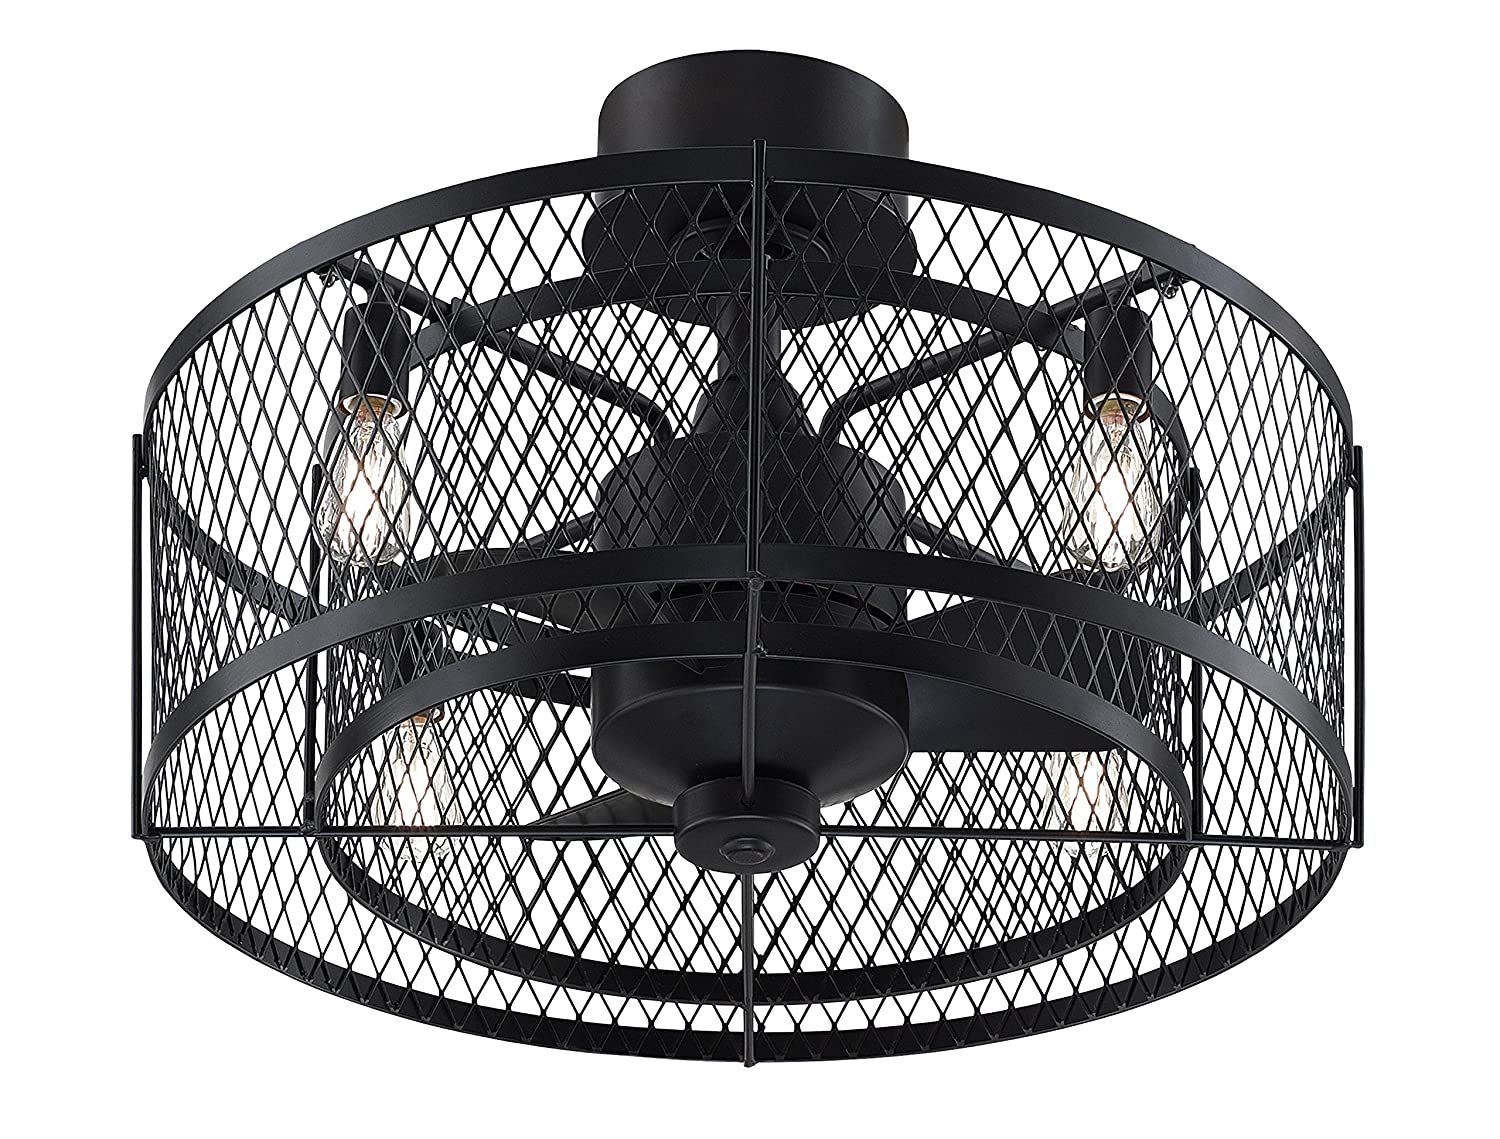 Fanimation studio collection lp8350laz vintere ceiling fan aged fanimation studio collection lp8350laz vintere ceiling fan aged bronze with vintage light kit amazon aloadofball Images